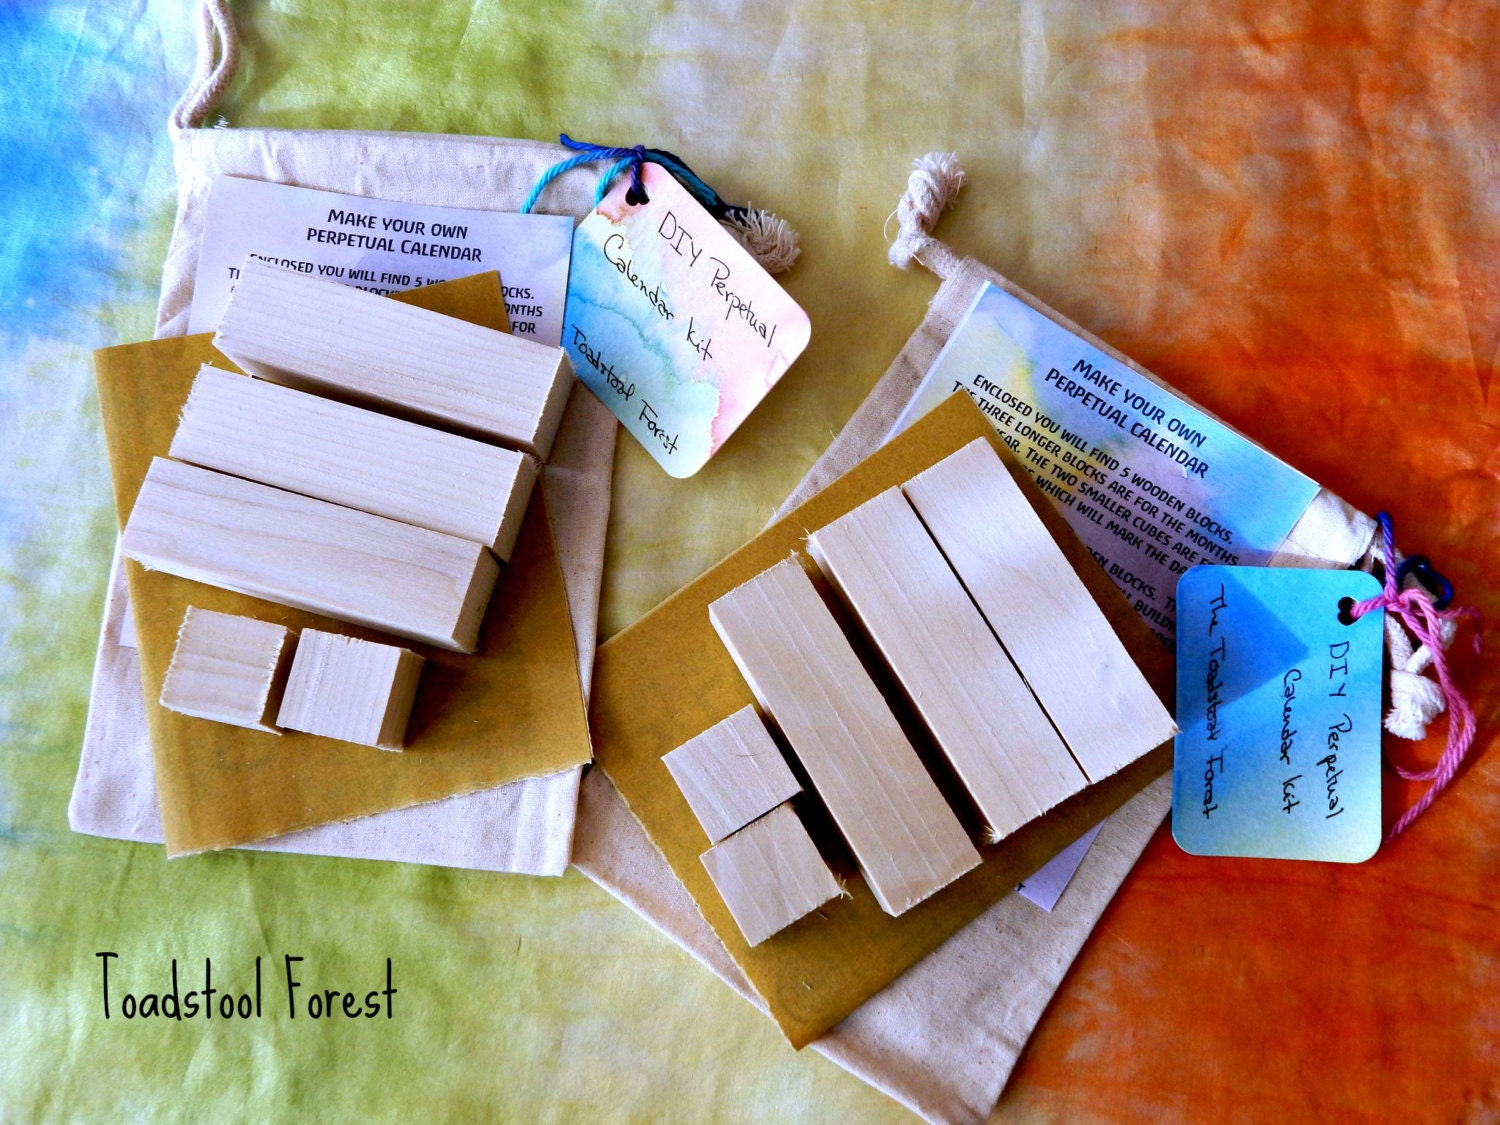 Calendar Blocks Diy : Diy perpetual calendar kit wooden block by thetoadstoolforest